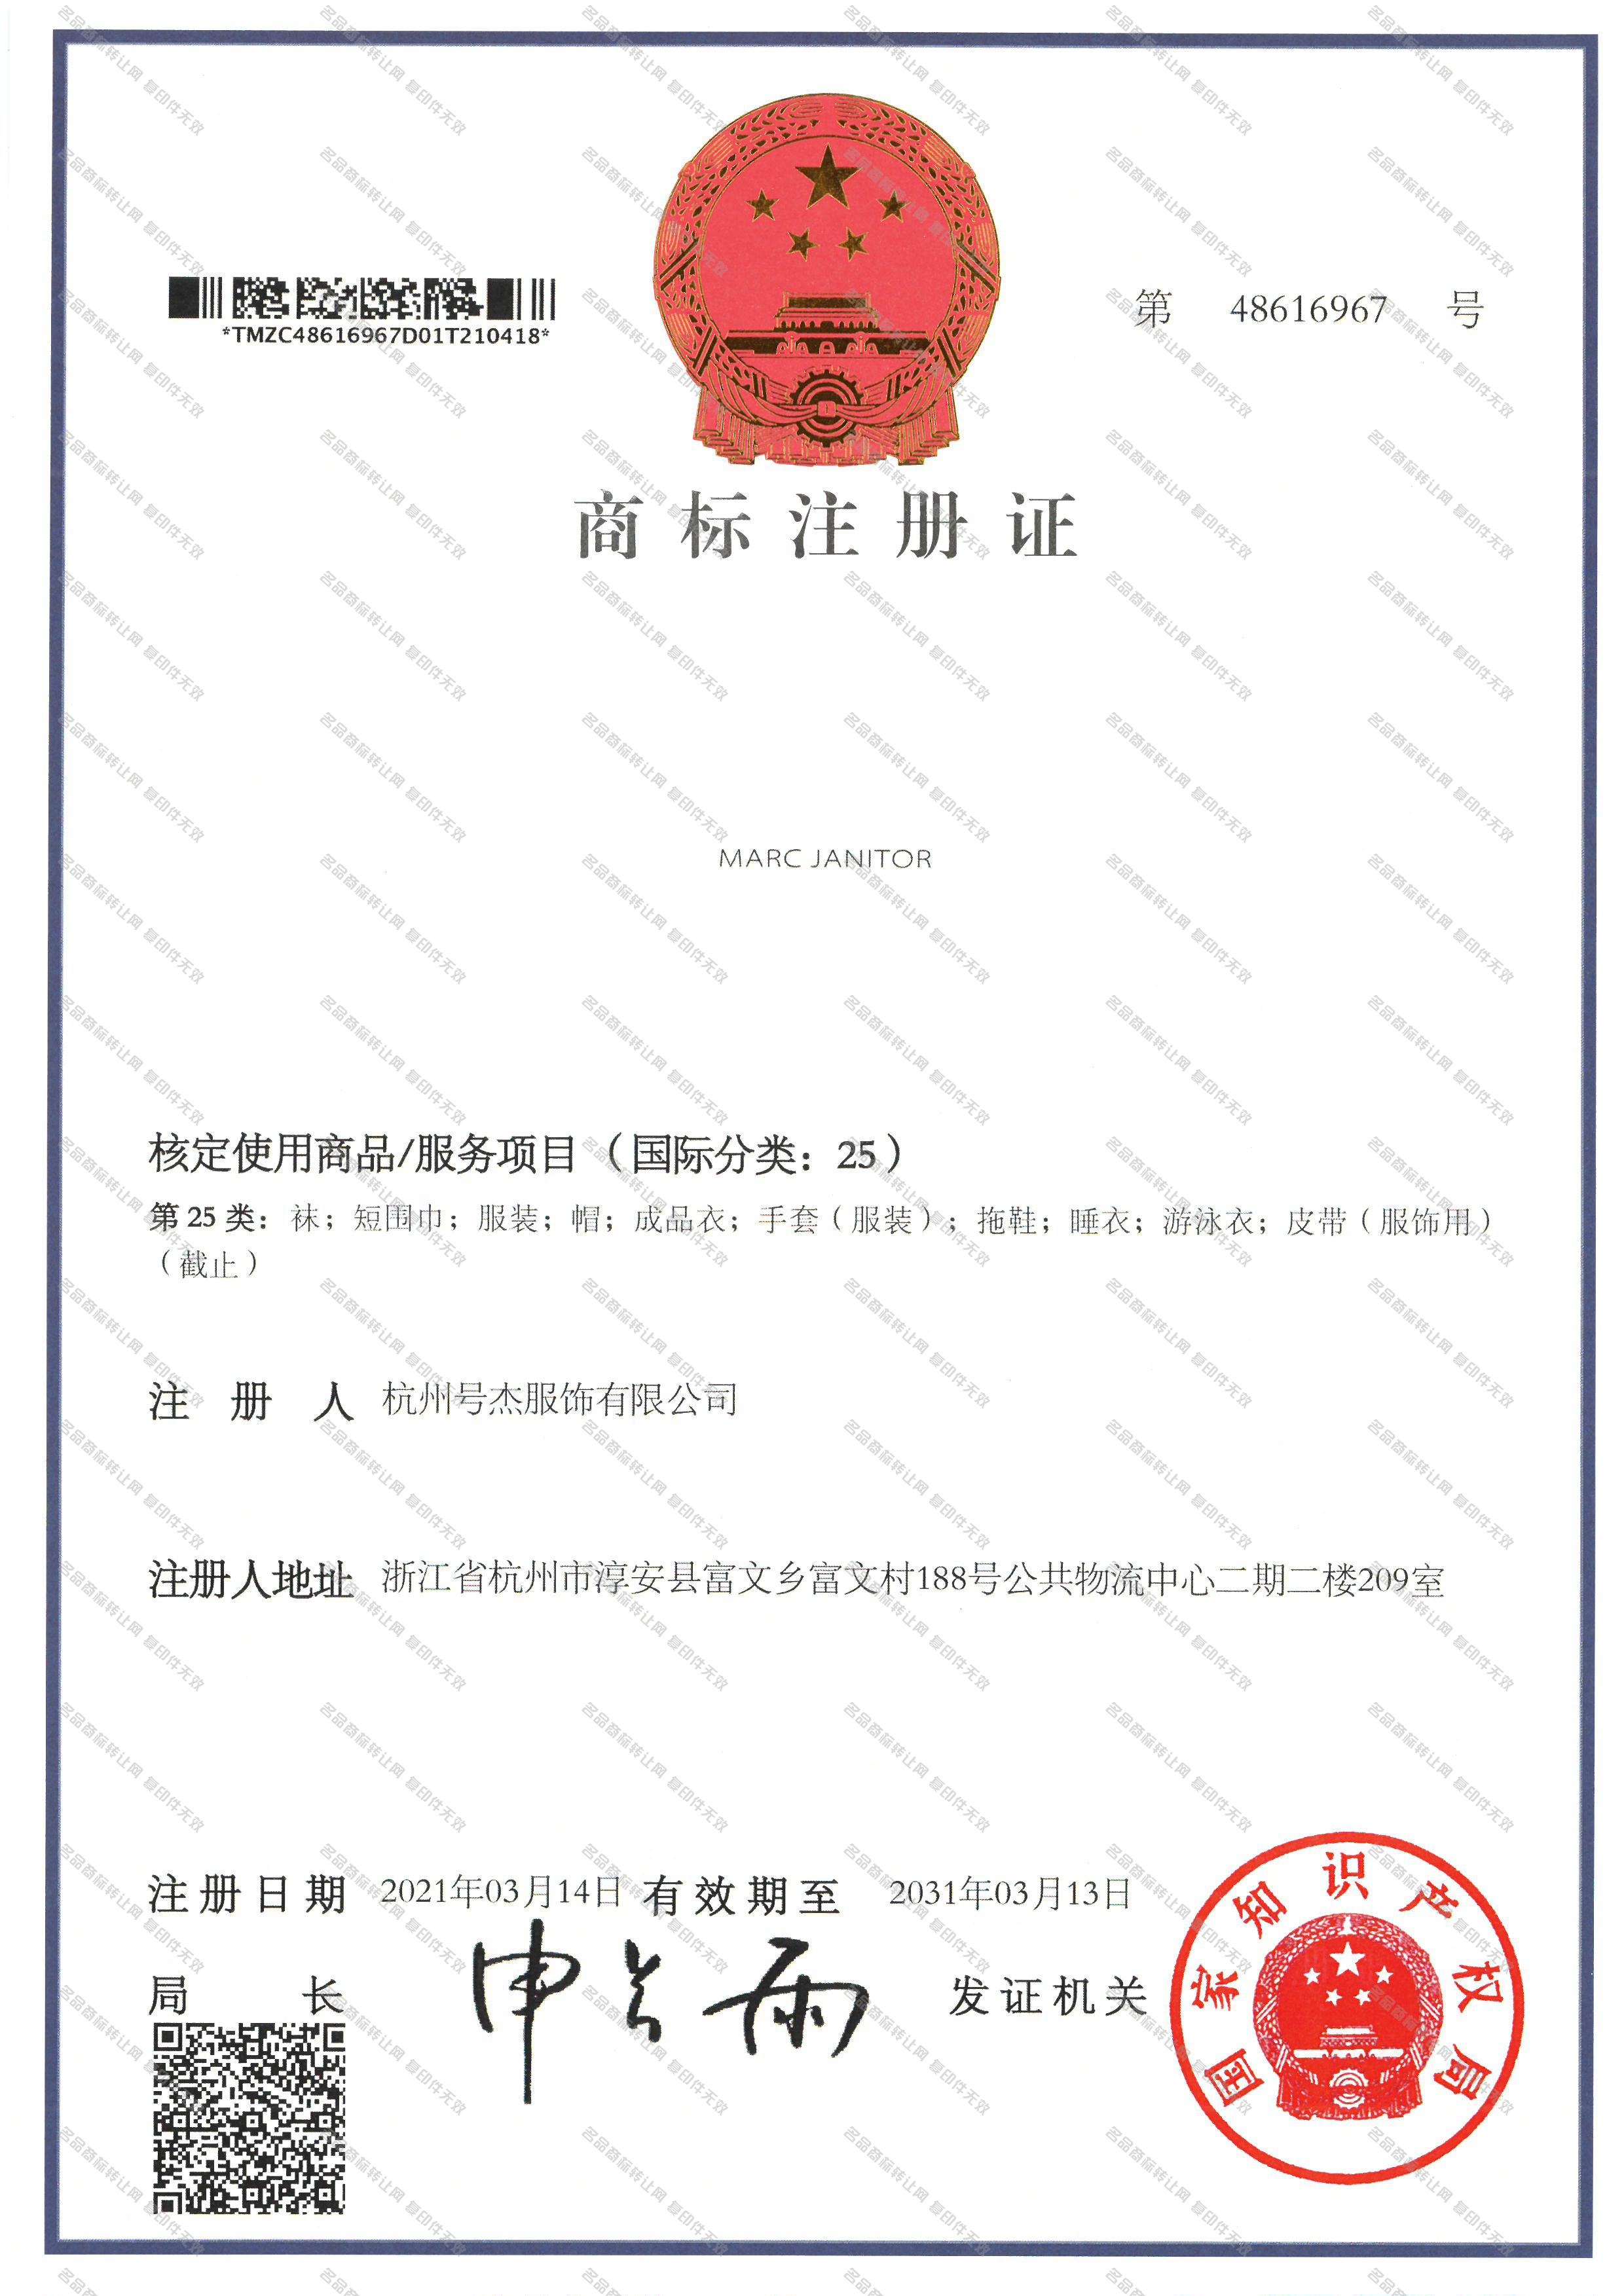 MARC JANITOR注册证